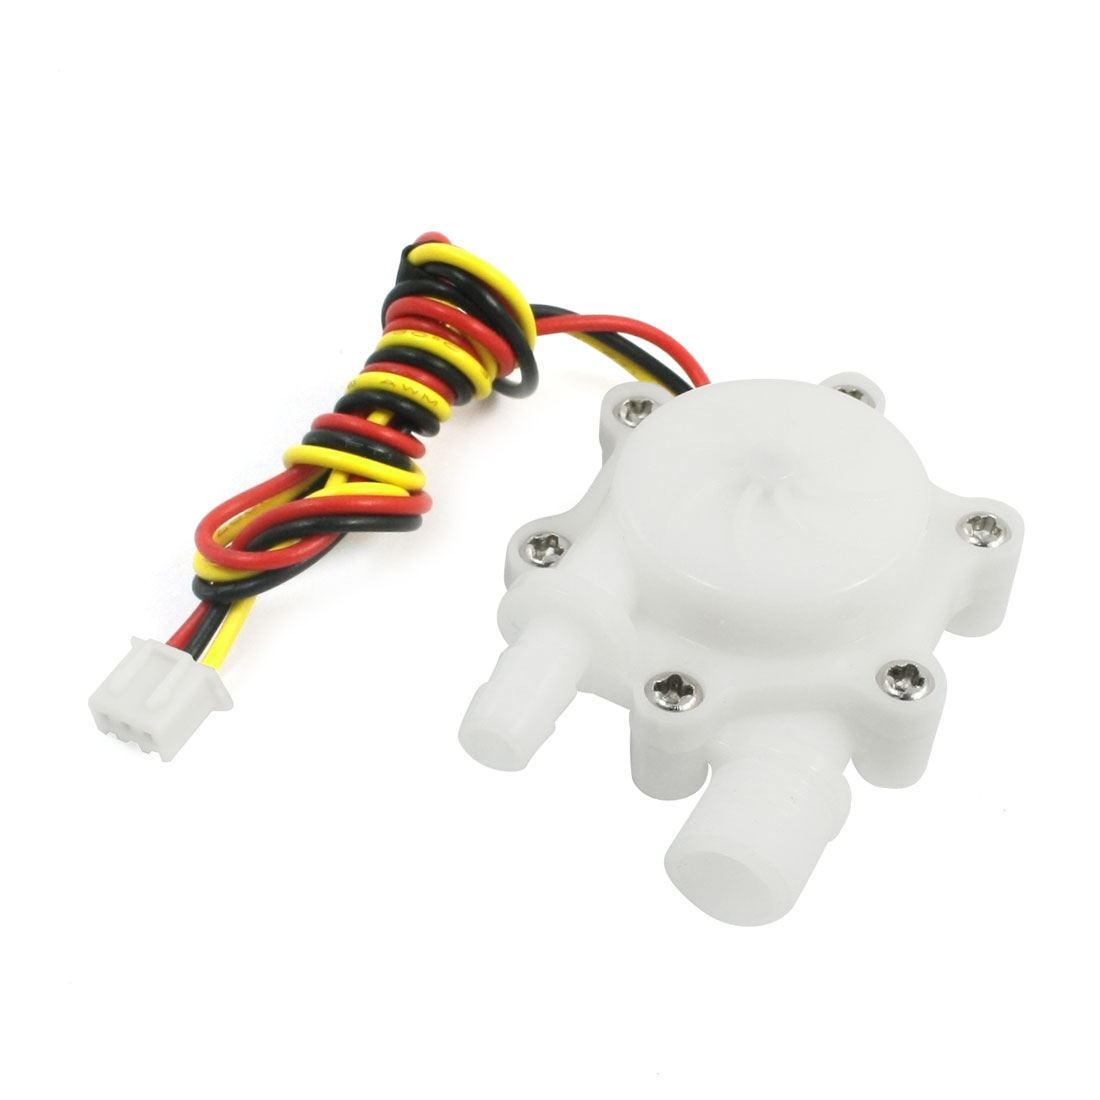 White POM 0.15-1.5L/min G1/4 Male Threaded 6mm Outlet Water Flow Sensor